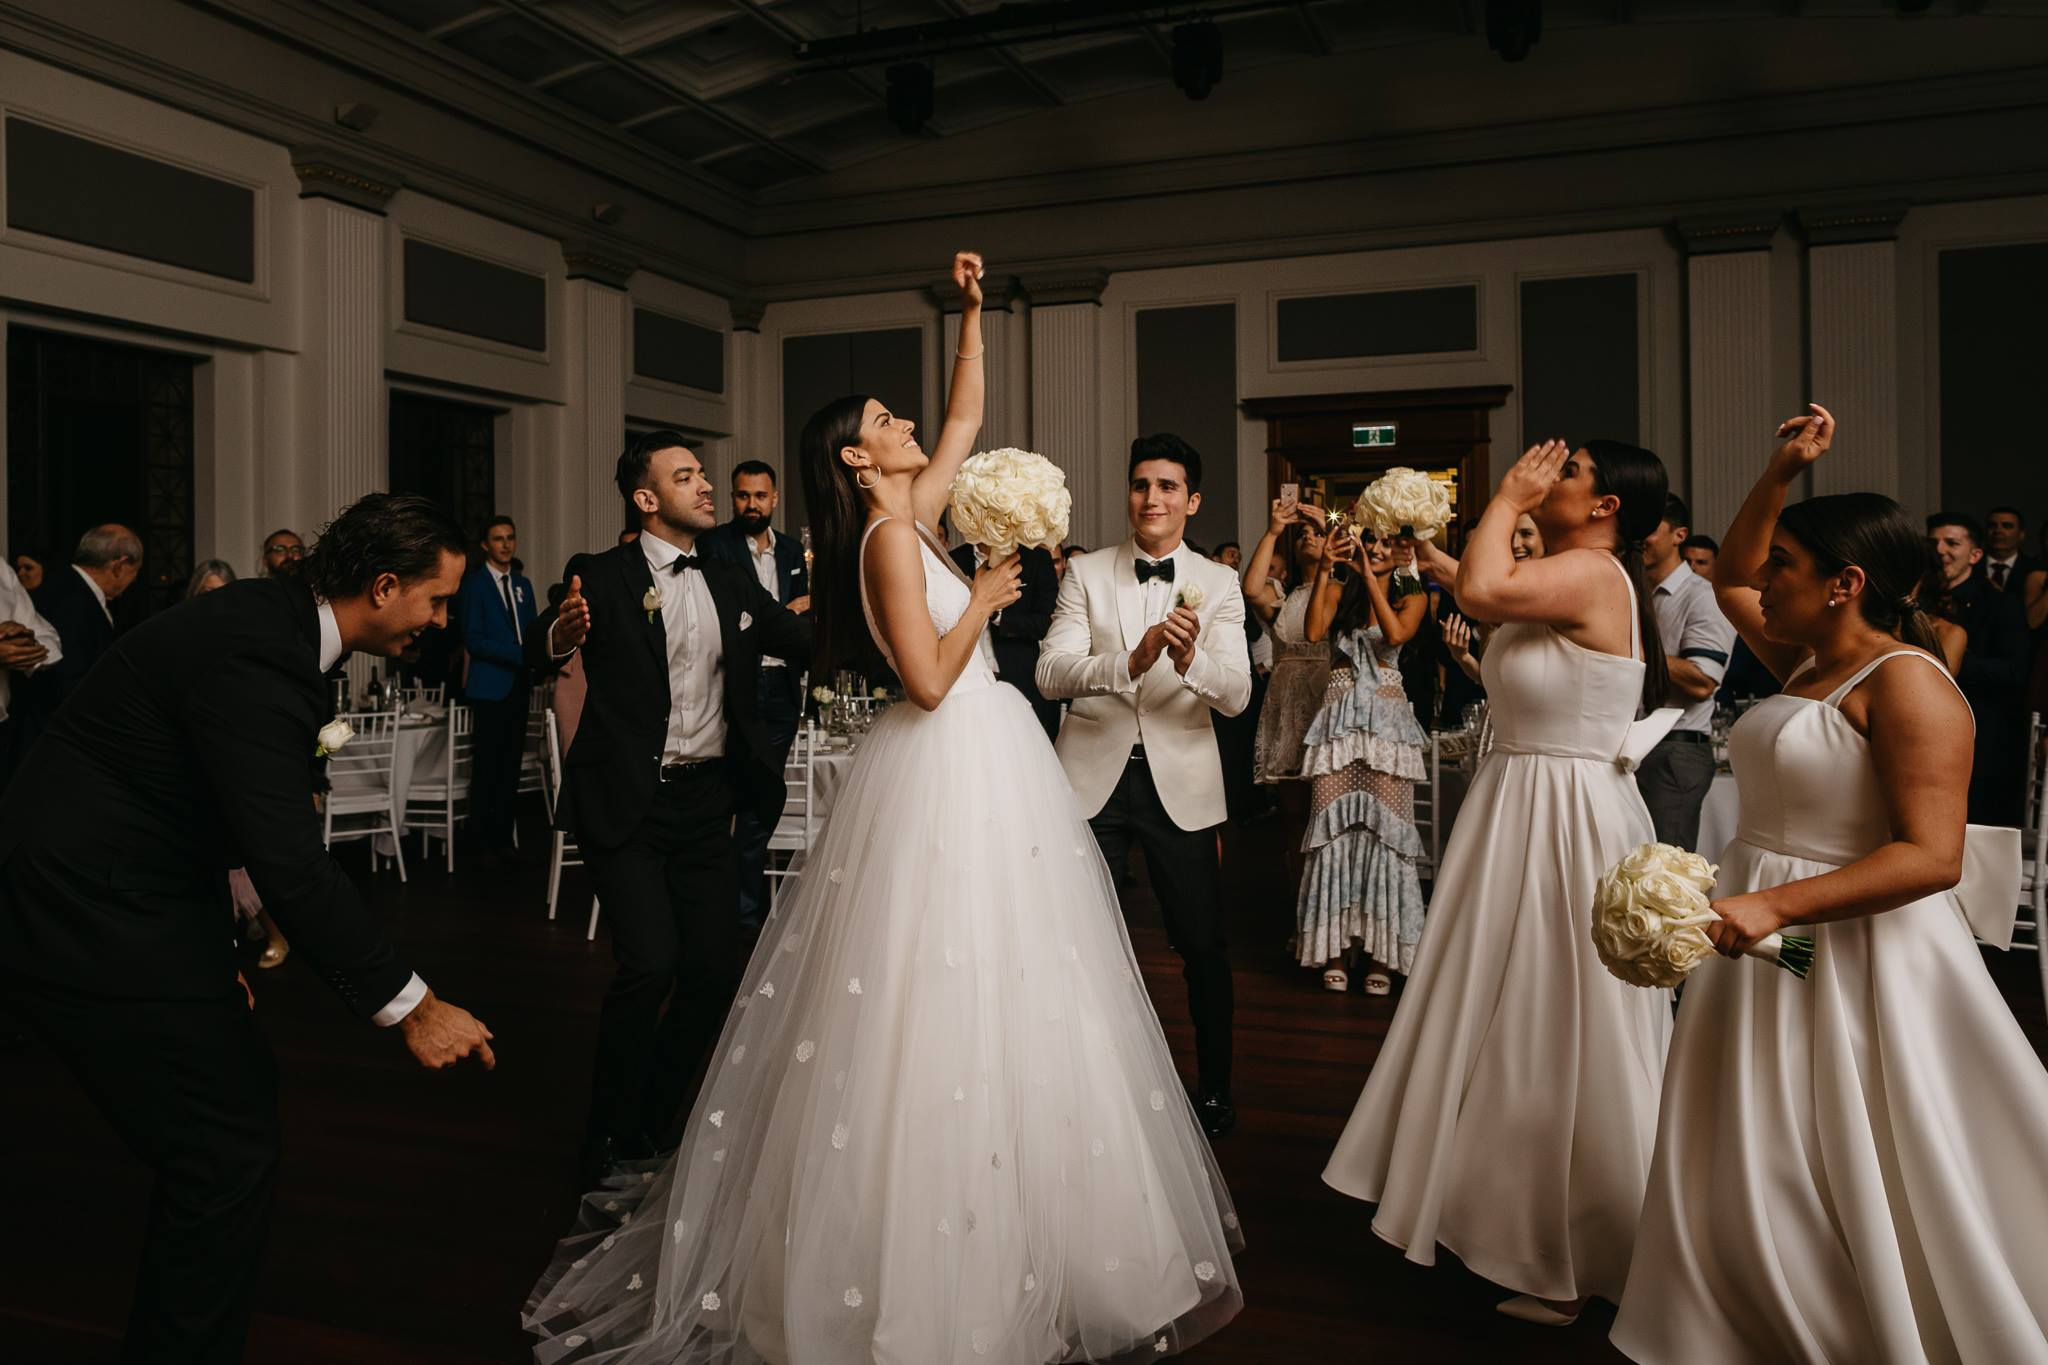 Capture all the movement & excitement of your wedding on film.